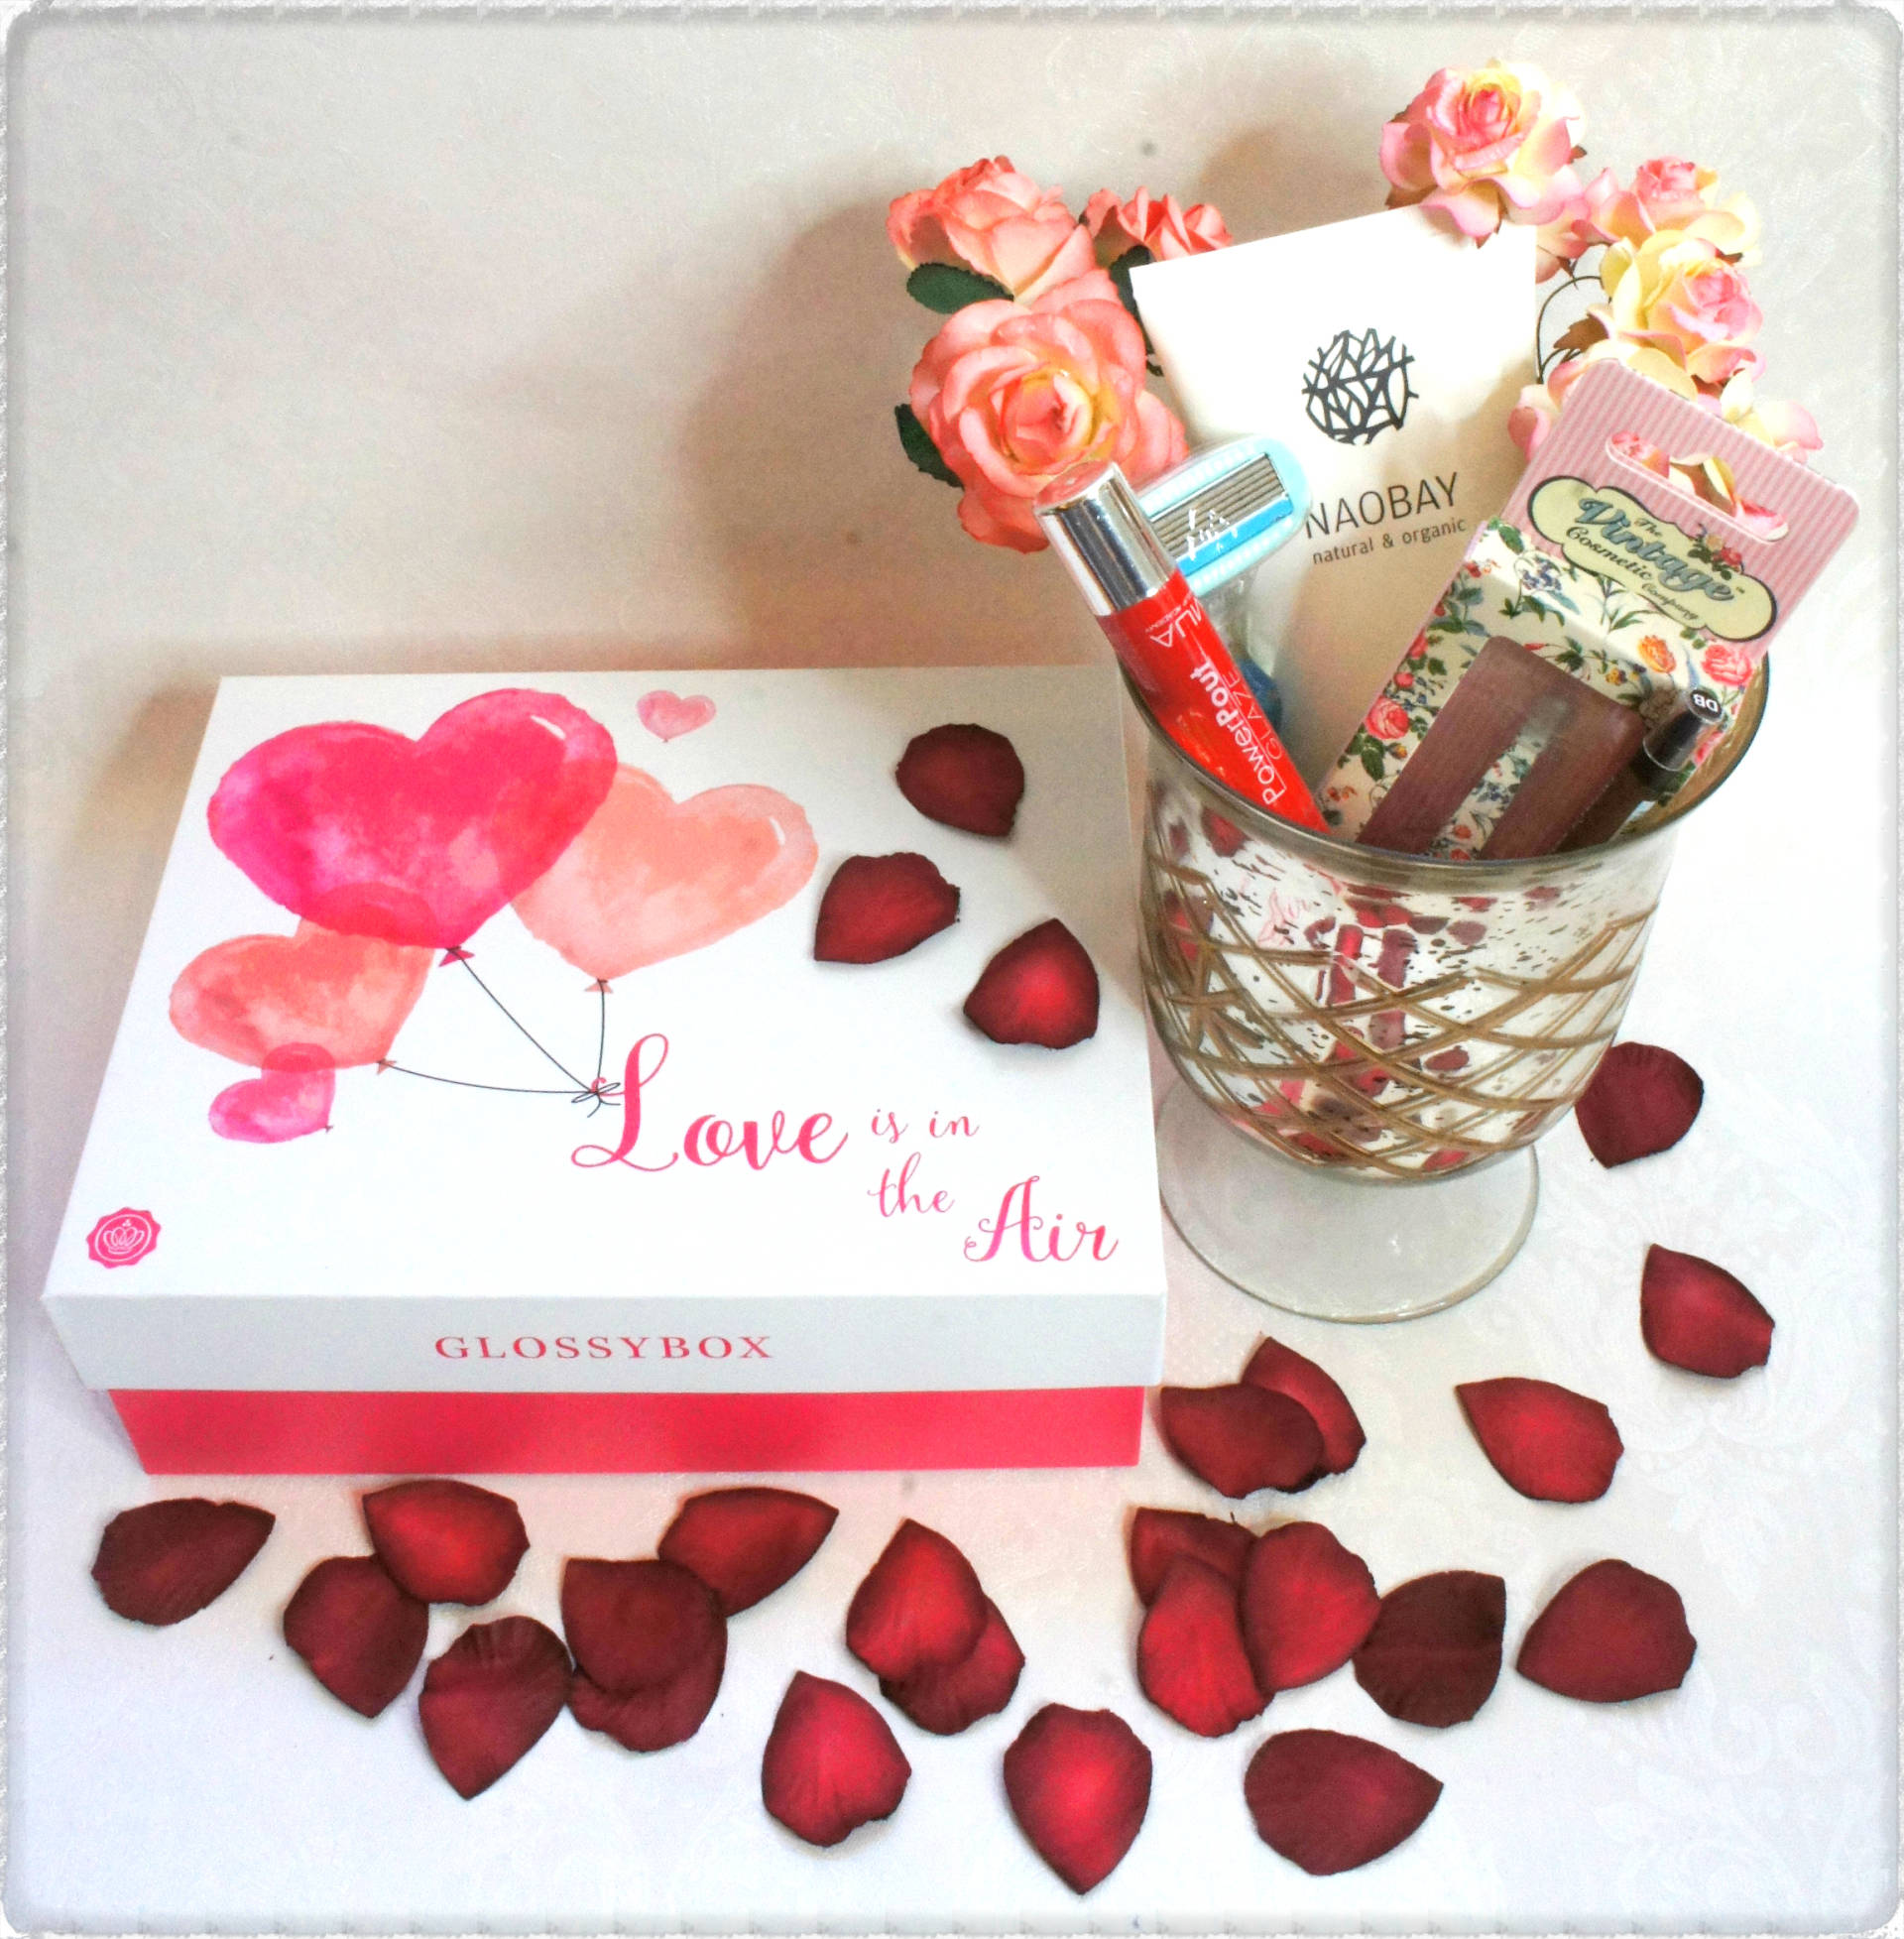 Glossybox February Love Is In The Air Box Review